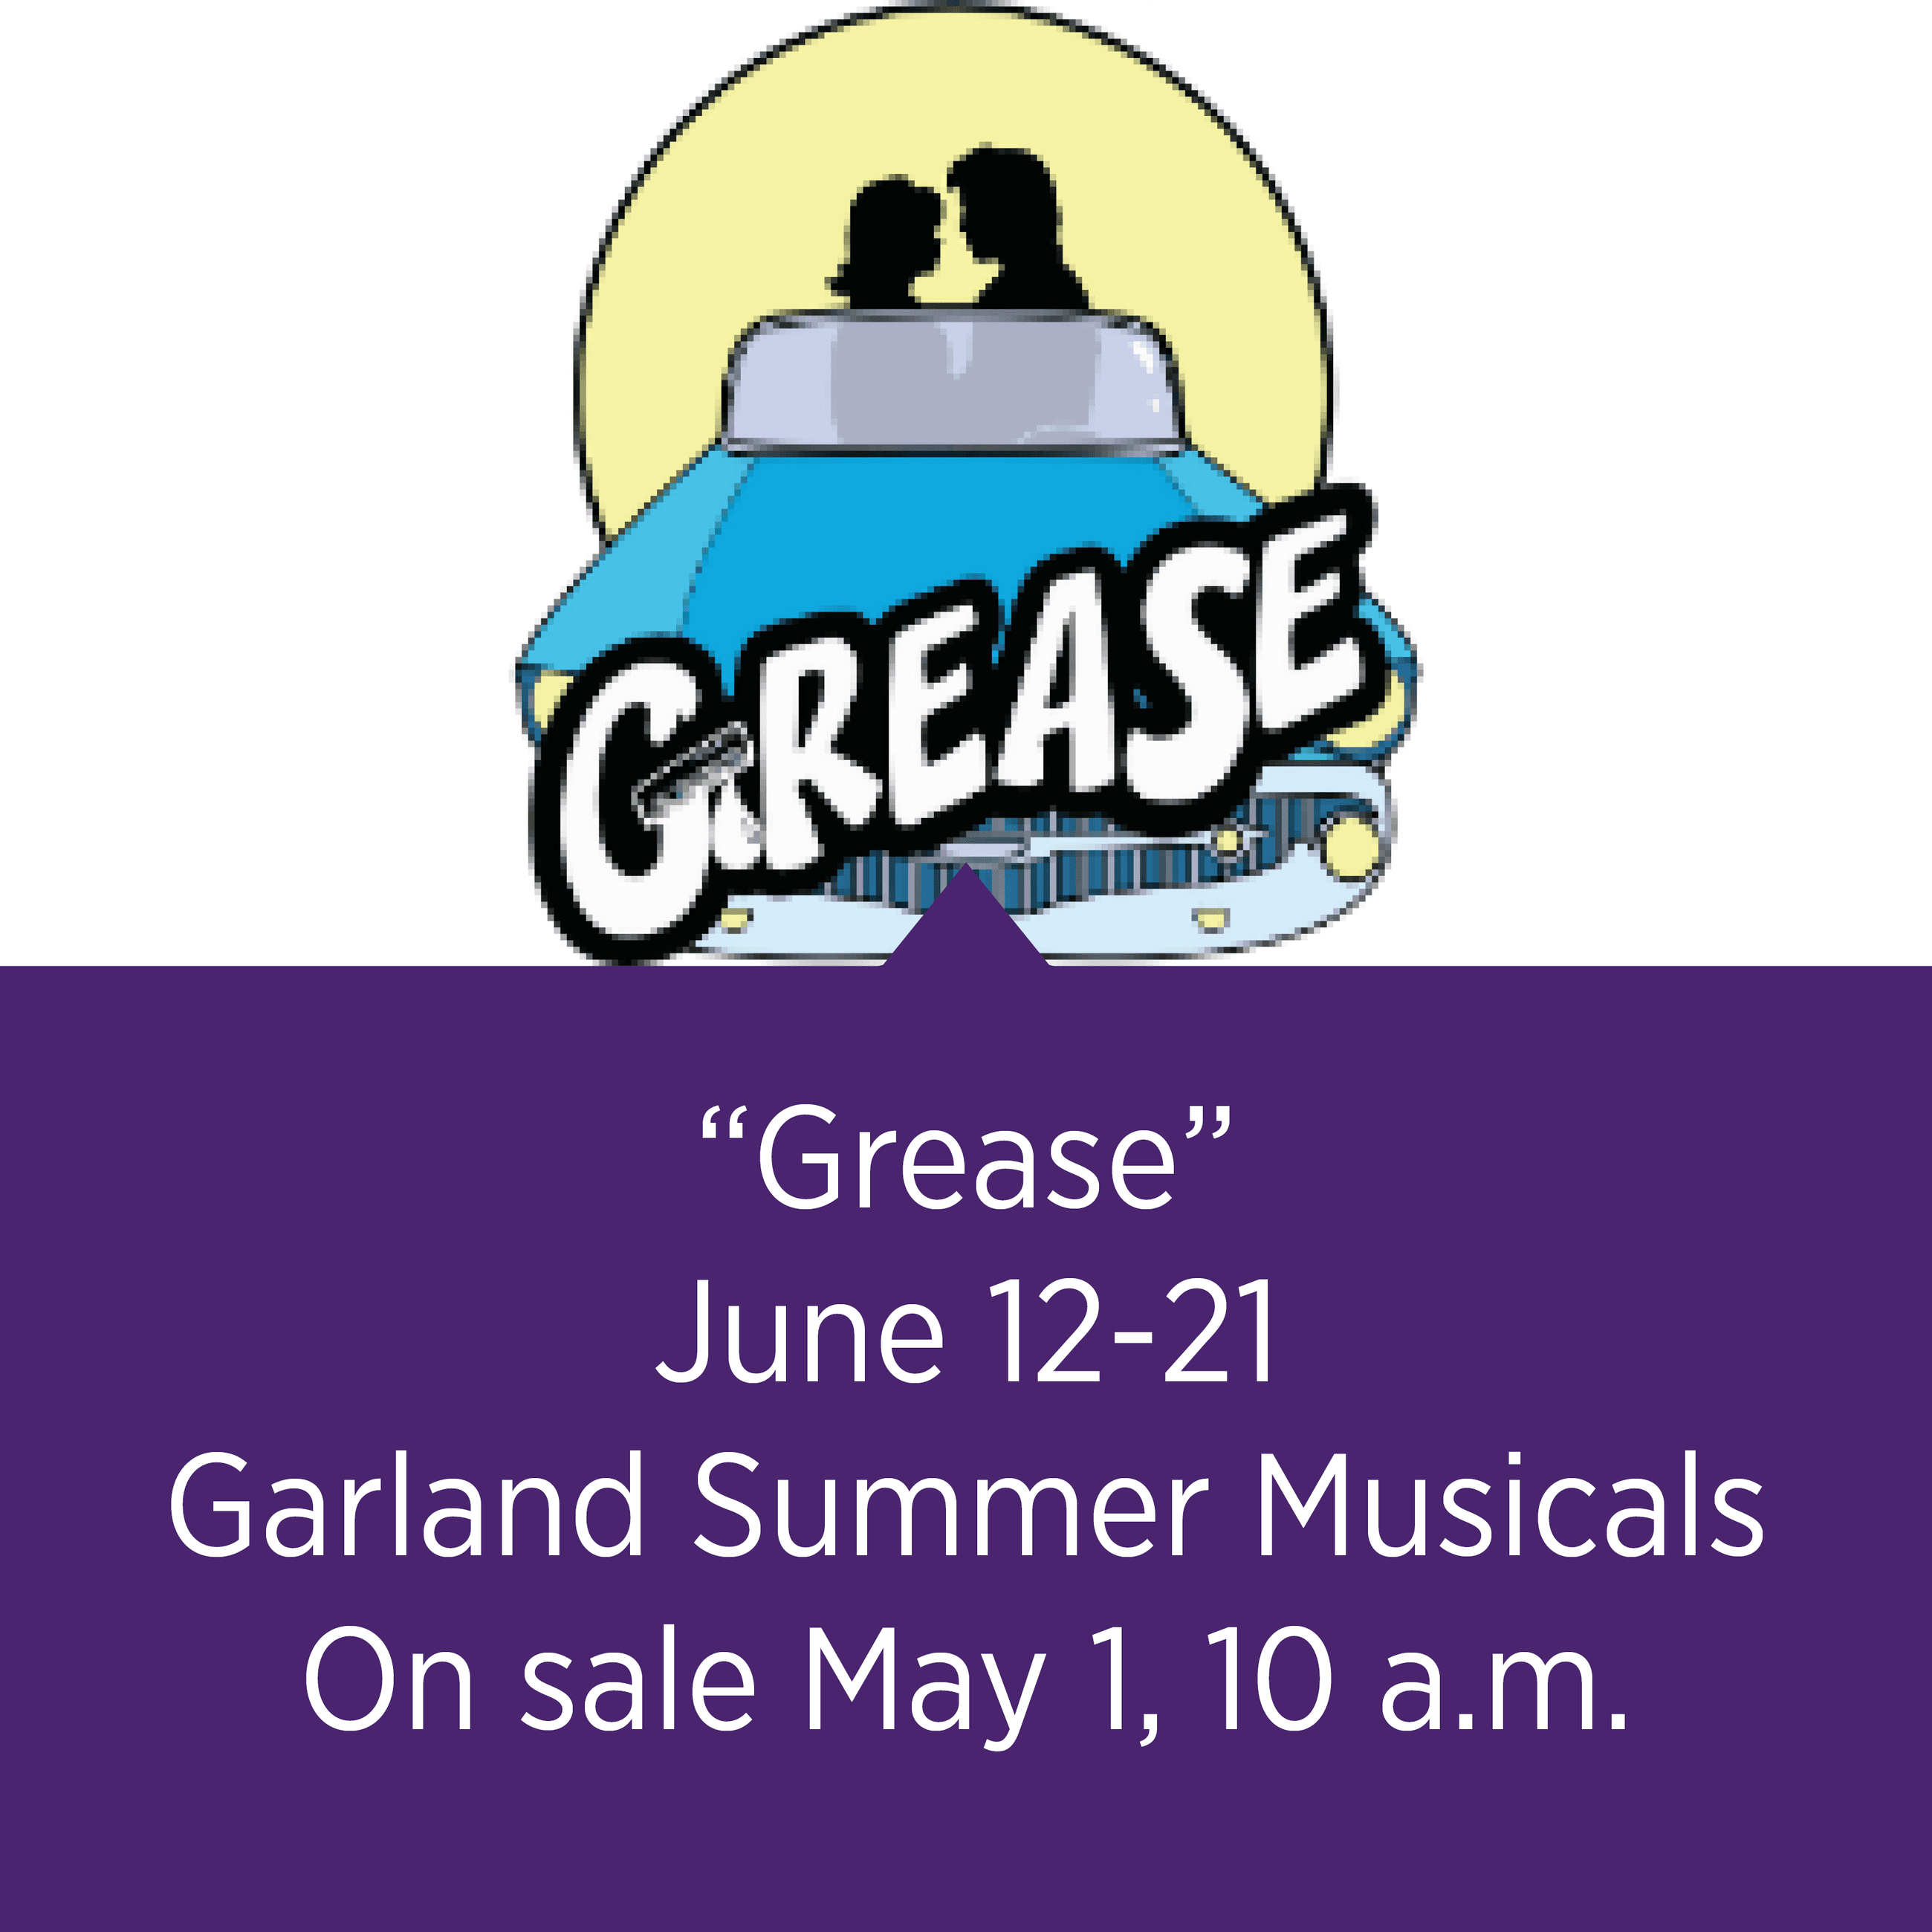 """Grease"" June 12-21, Garland Summer Musicals, On sale May 1, 10 a.m."